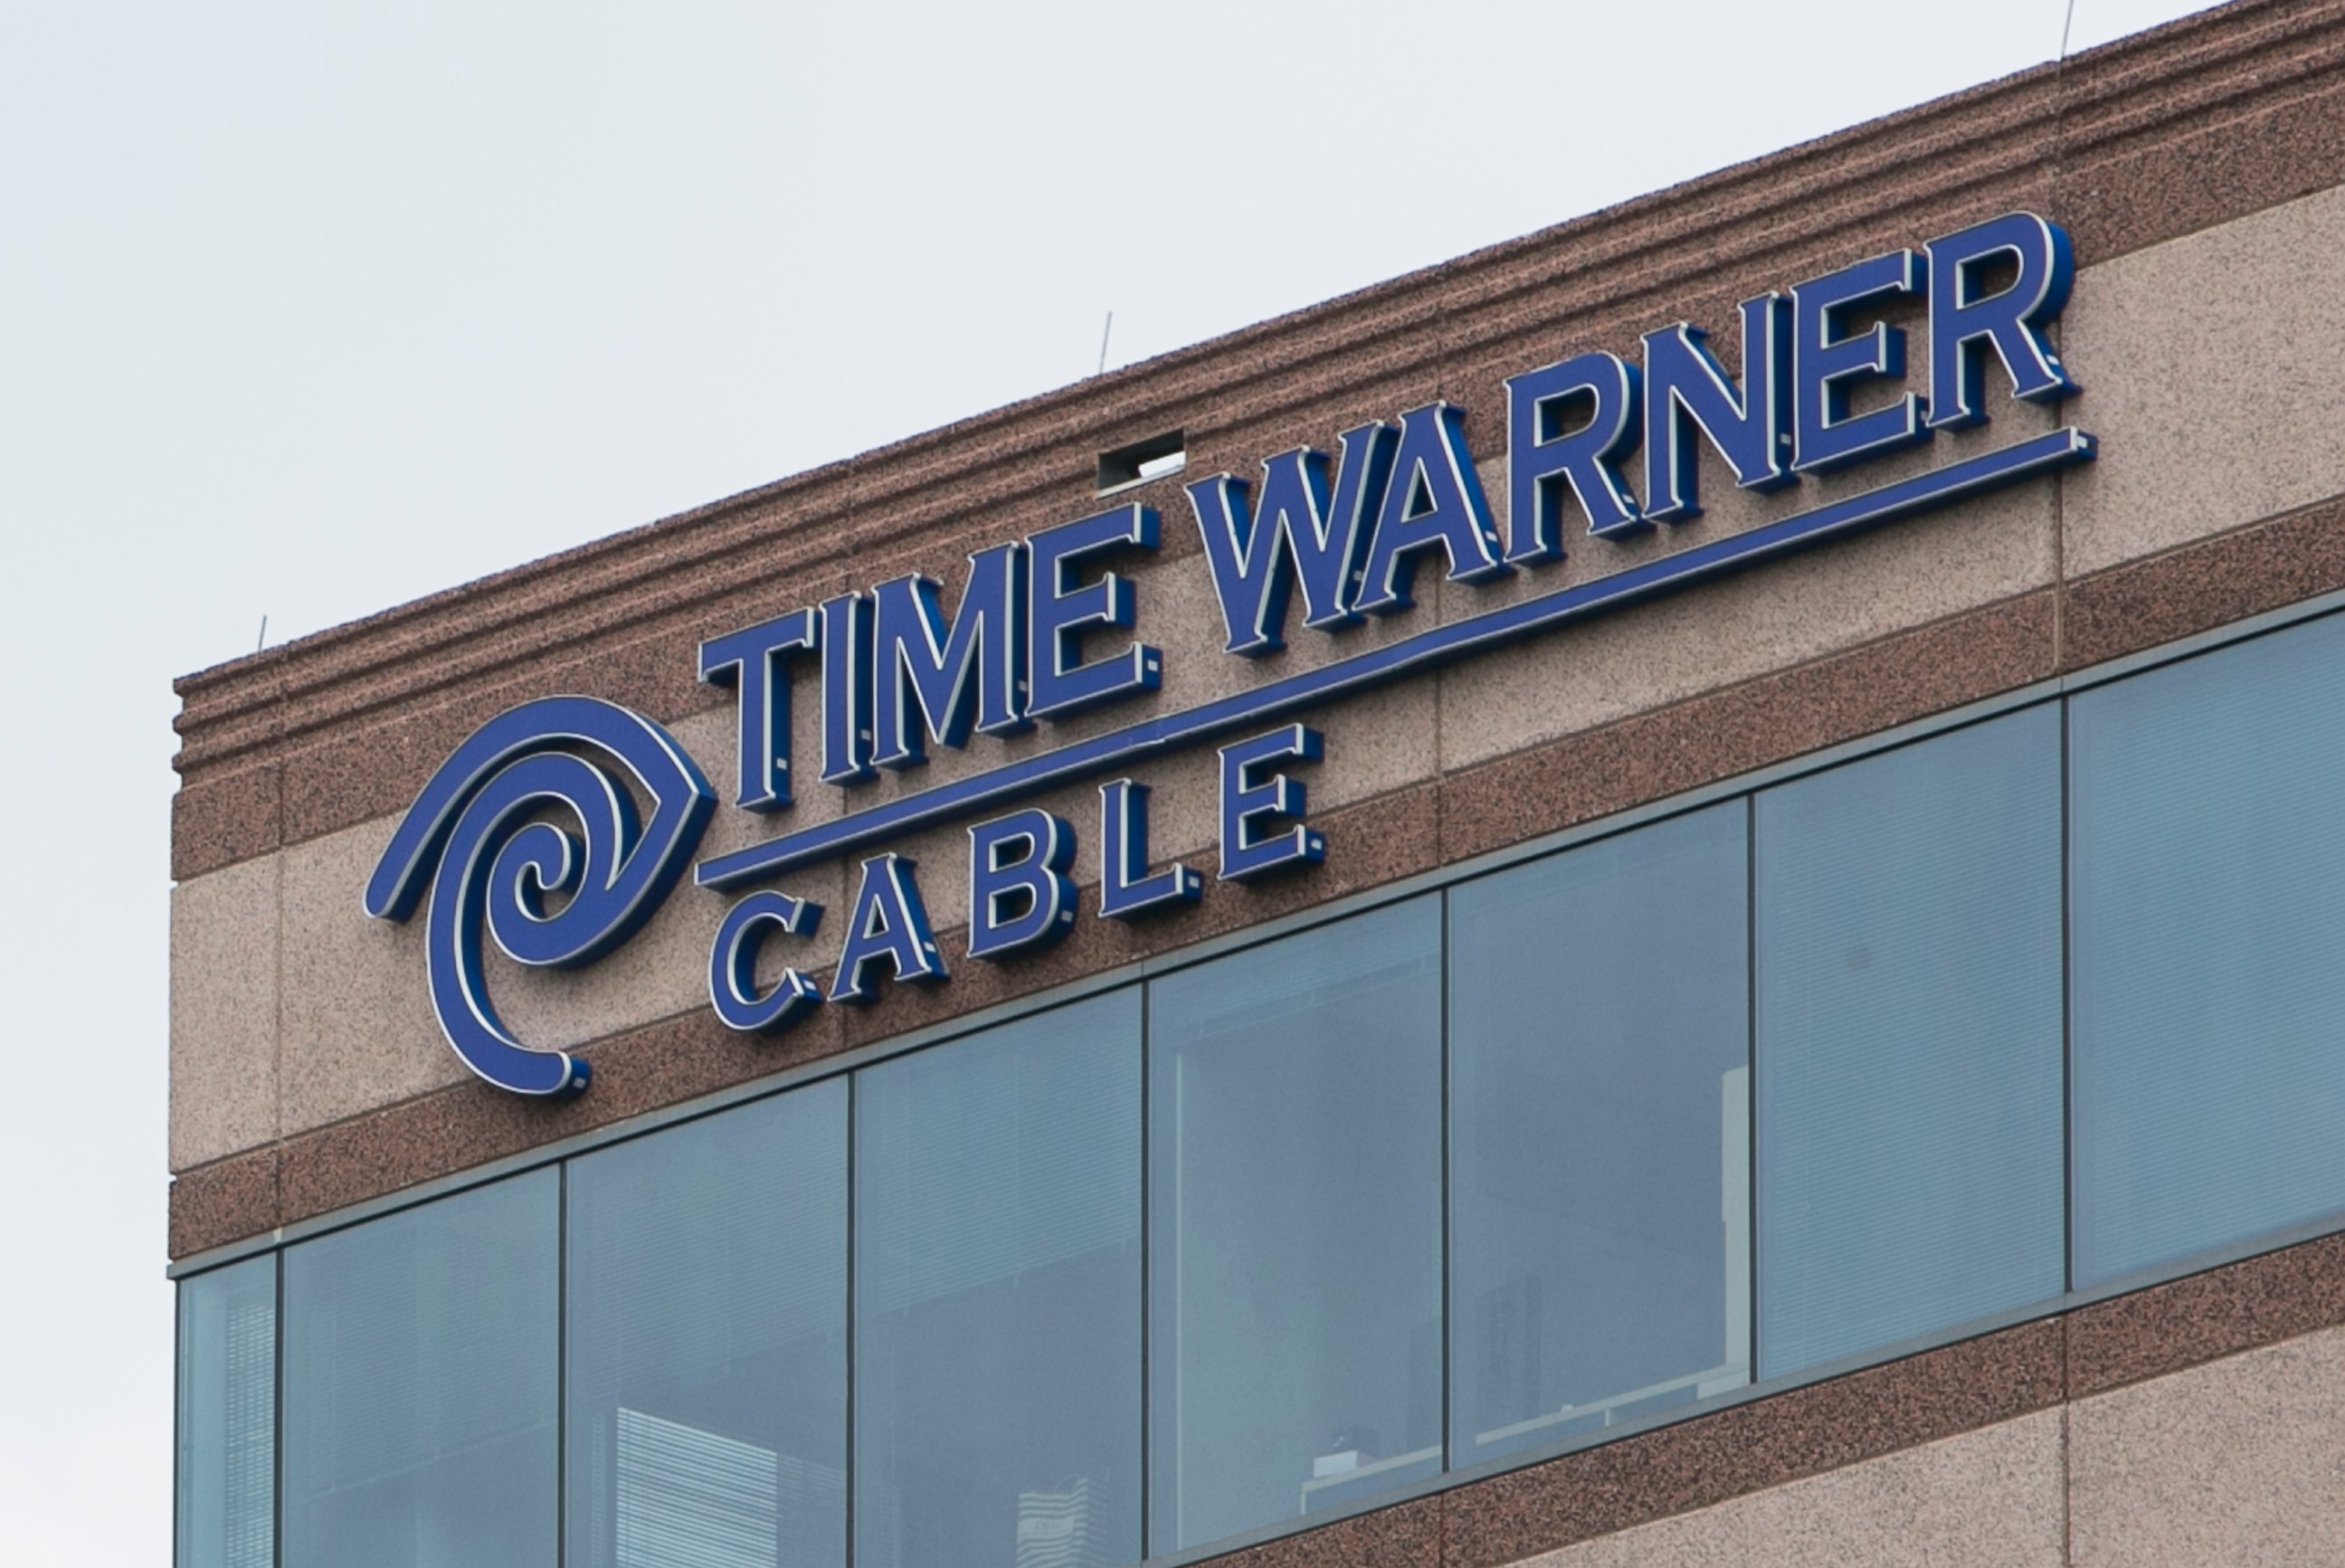 Where can you get a channel finder for Time Warner Cable?